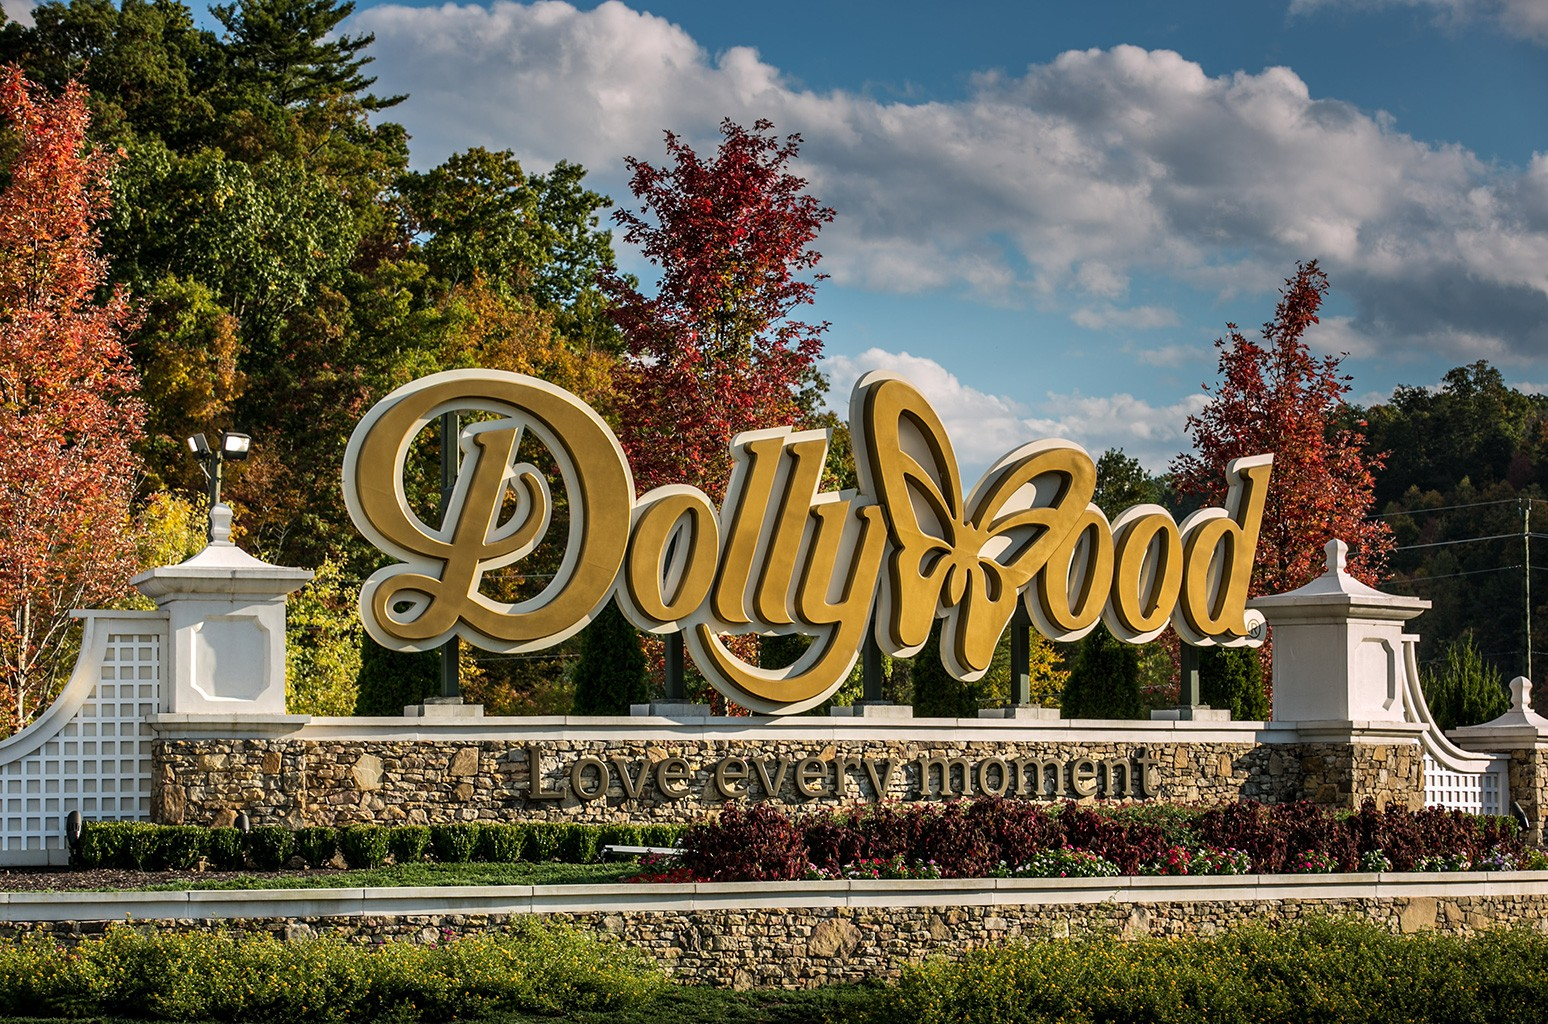 The entrance to Dollywood is viewed on October 18, 2016 in Pigeon Forge, Tenn.